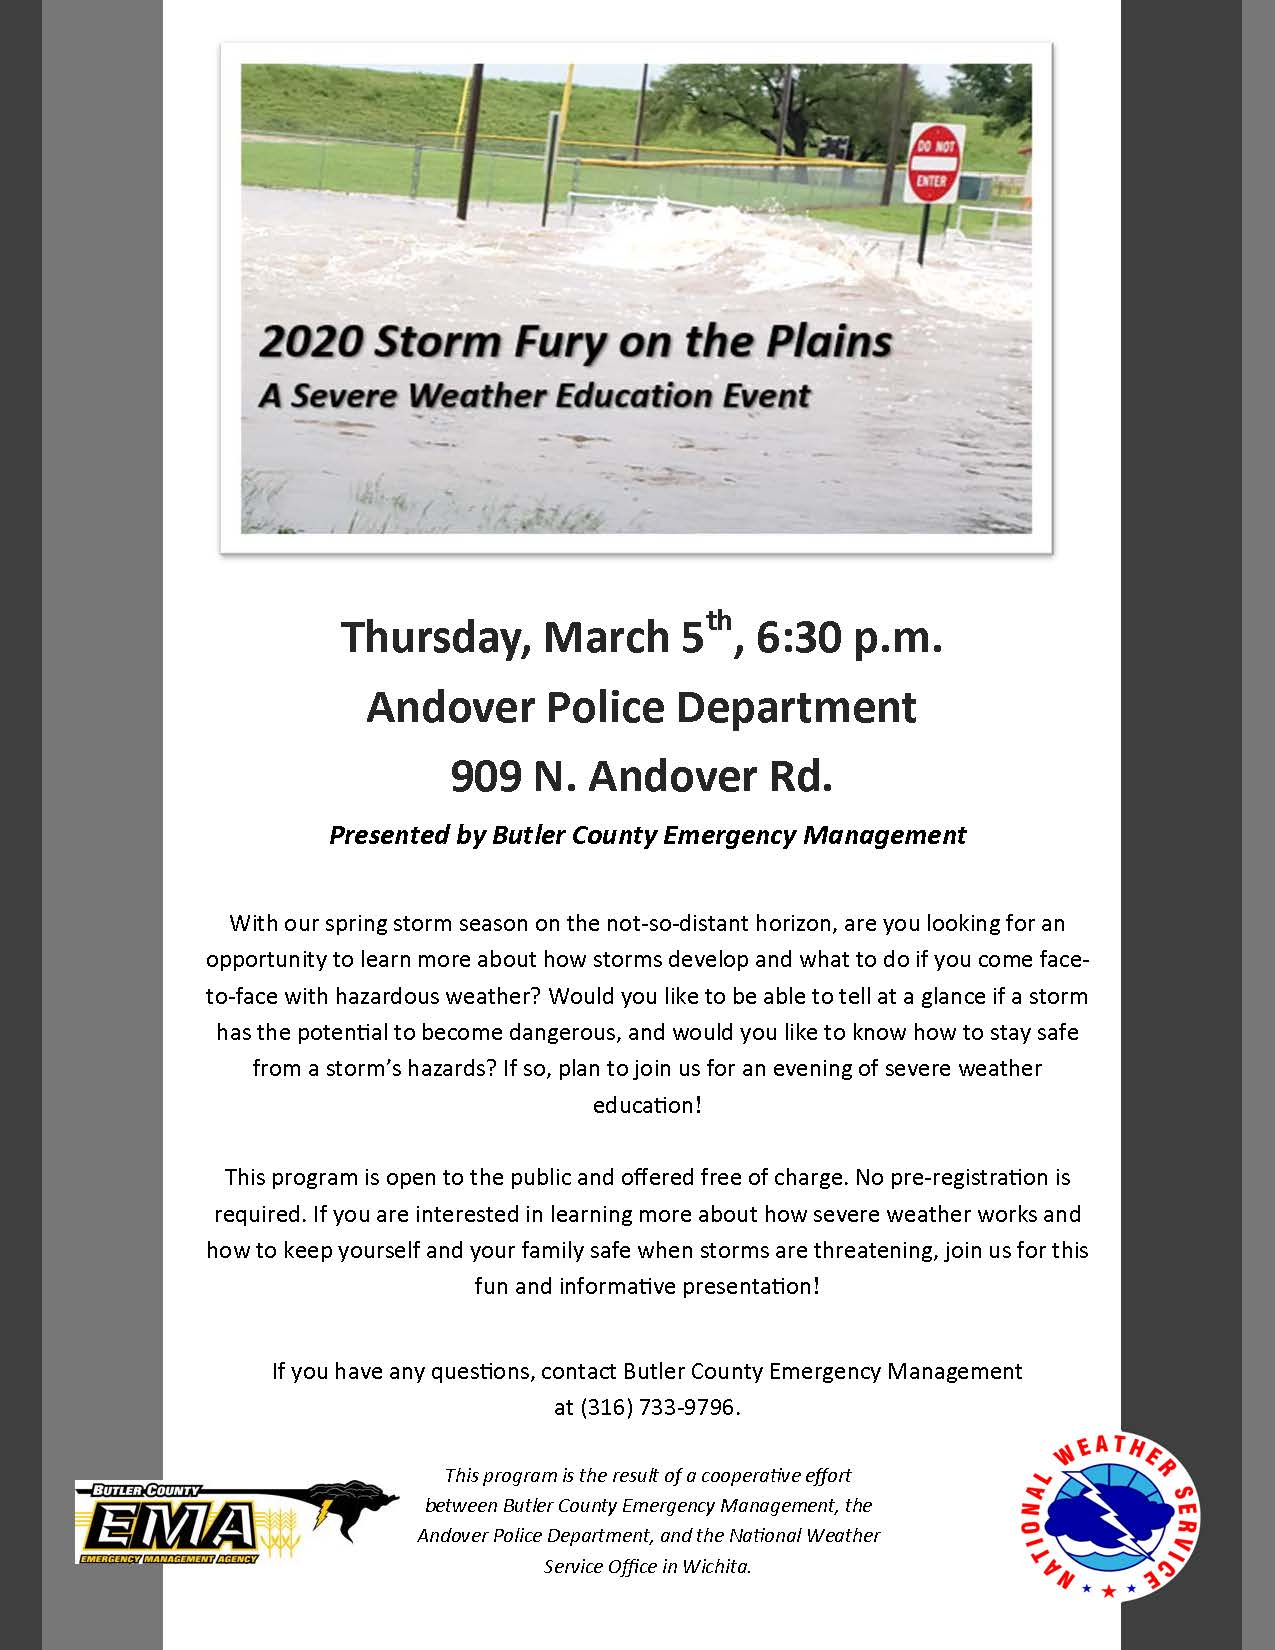 Storm Fury 2020 Flyer - 03-05-2020 at 6:30pm at Andover PD